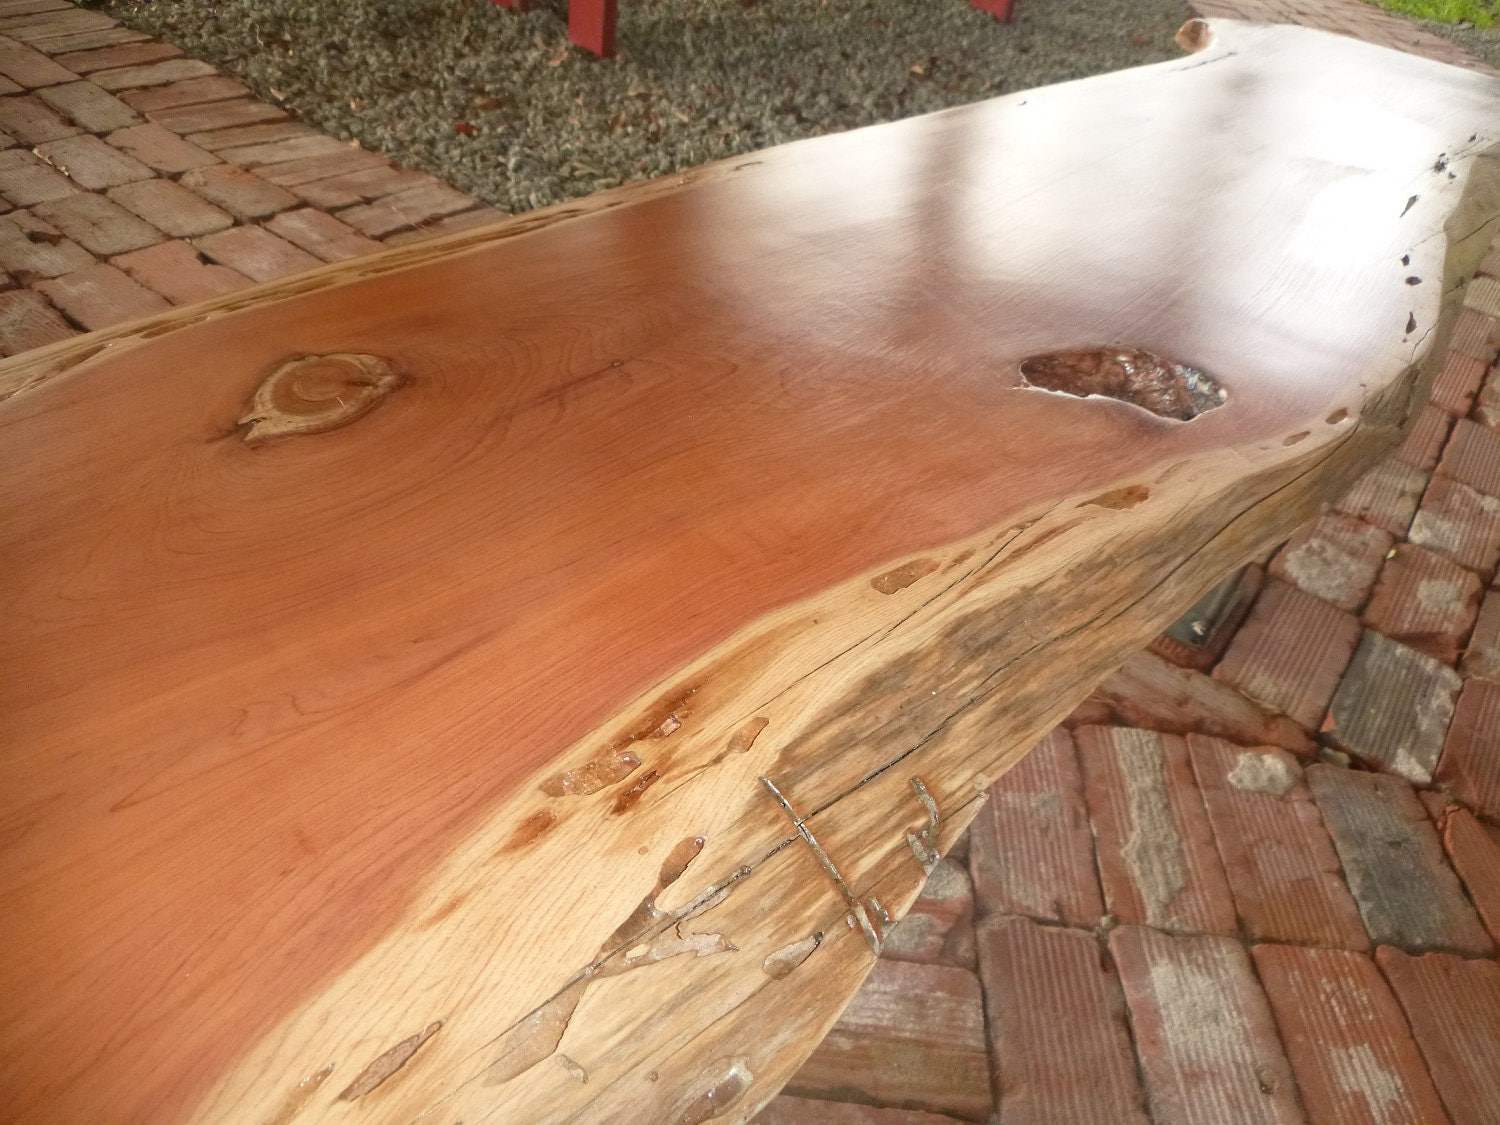 Live Edge Solid Hardwood Cedar Wood Slab Natural Color Table